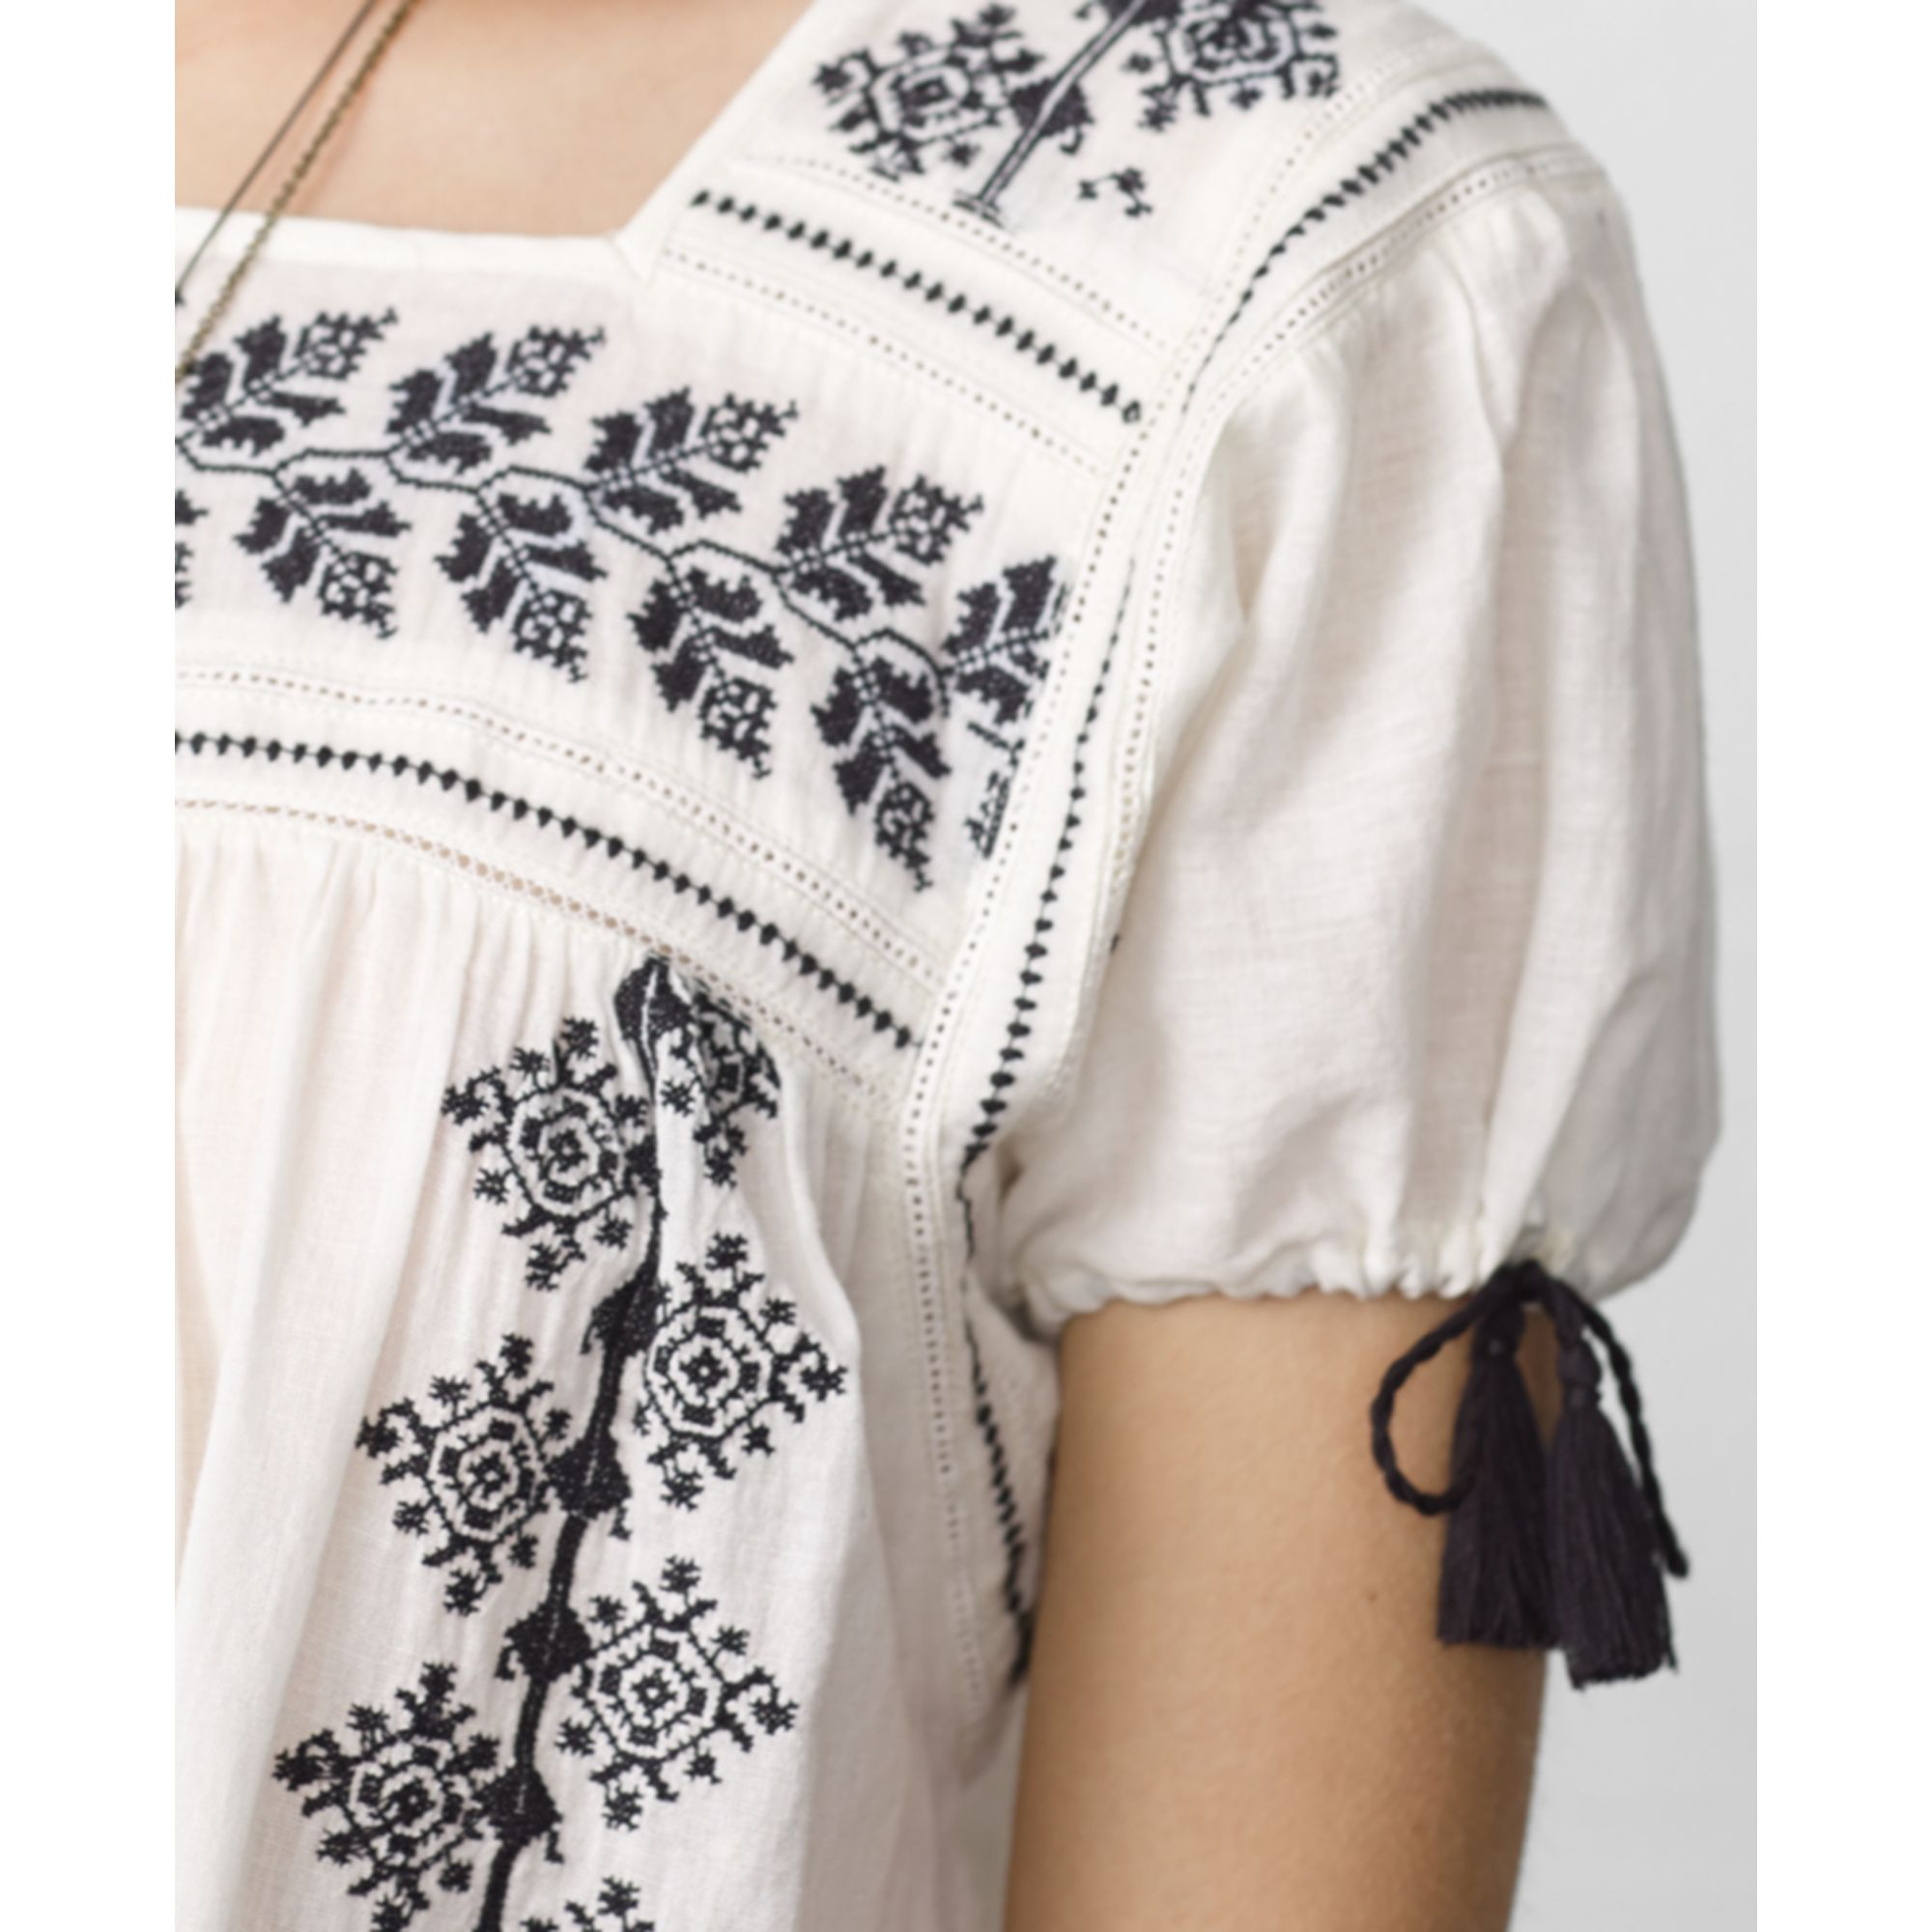 Choose new style ralph lauren embroidered crest shirt white regina sale for  women,polo ralph lauren factory,polo ralph lauren outlet,complete in ...